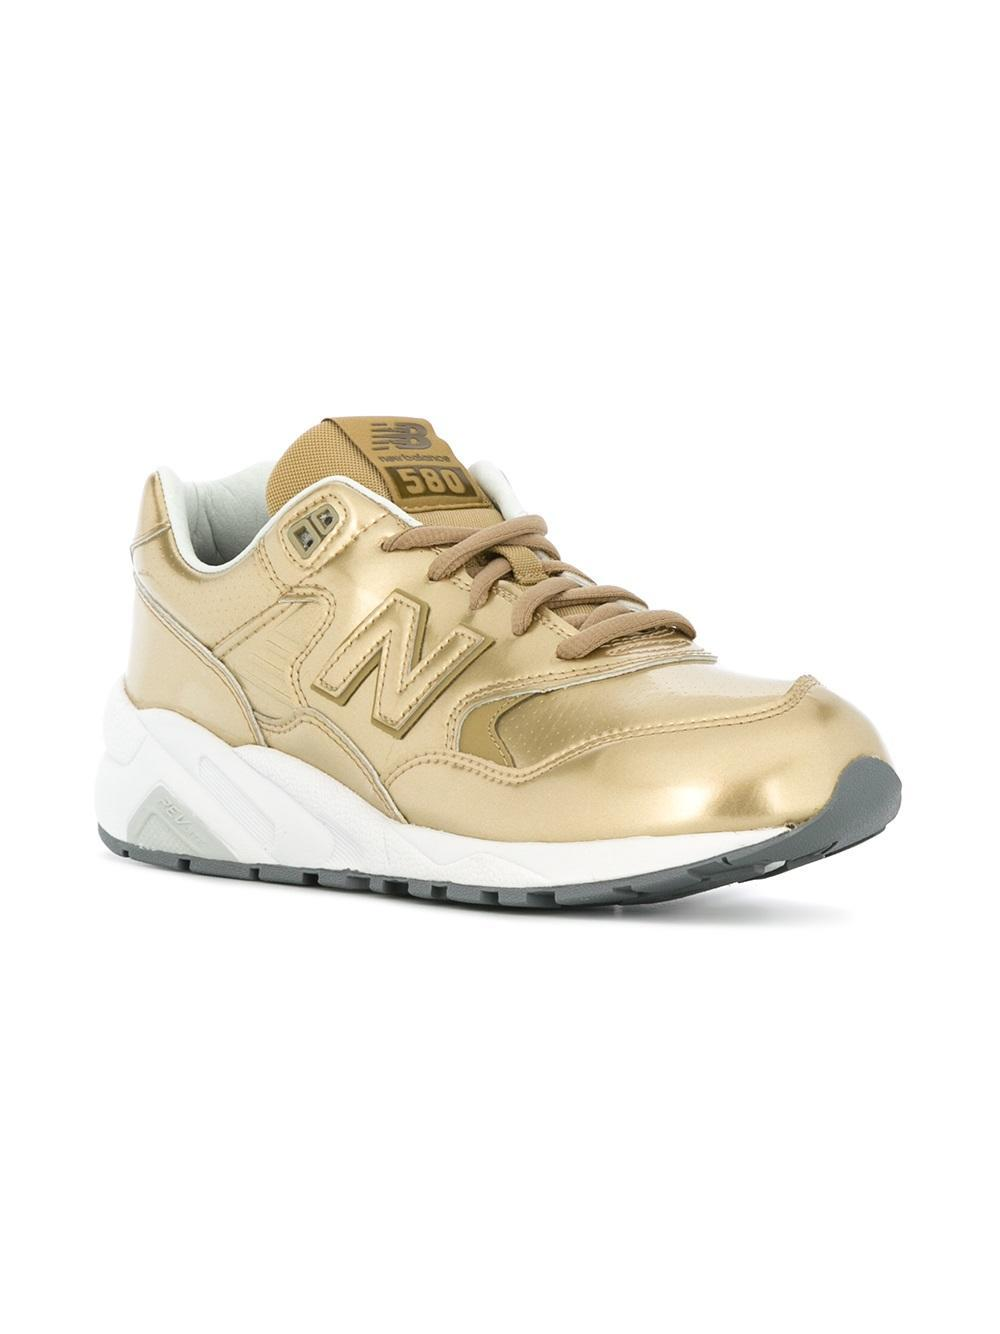 House Of Fraser New Balance Shoes